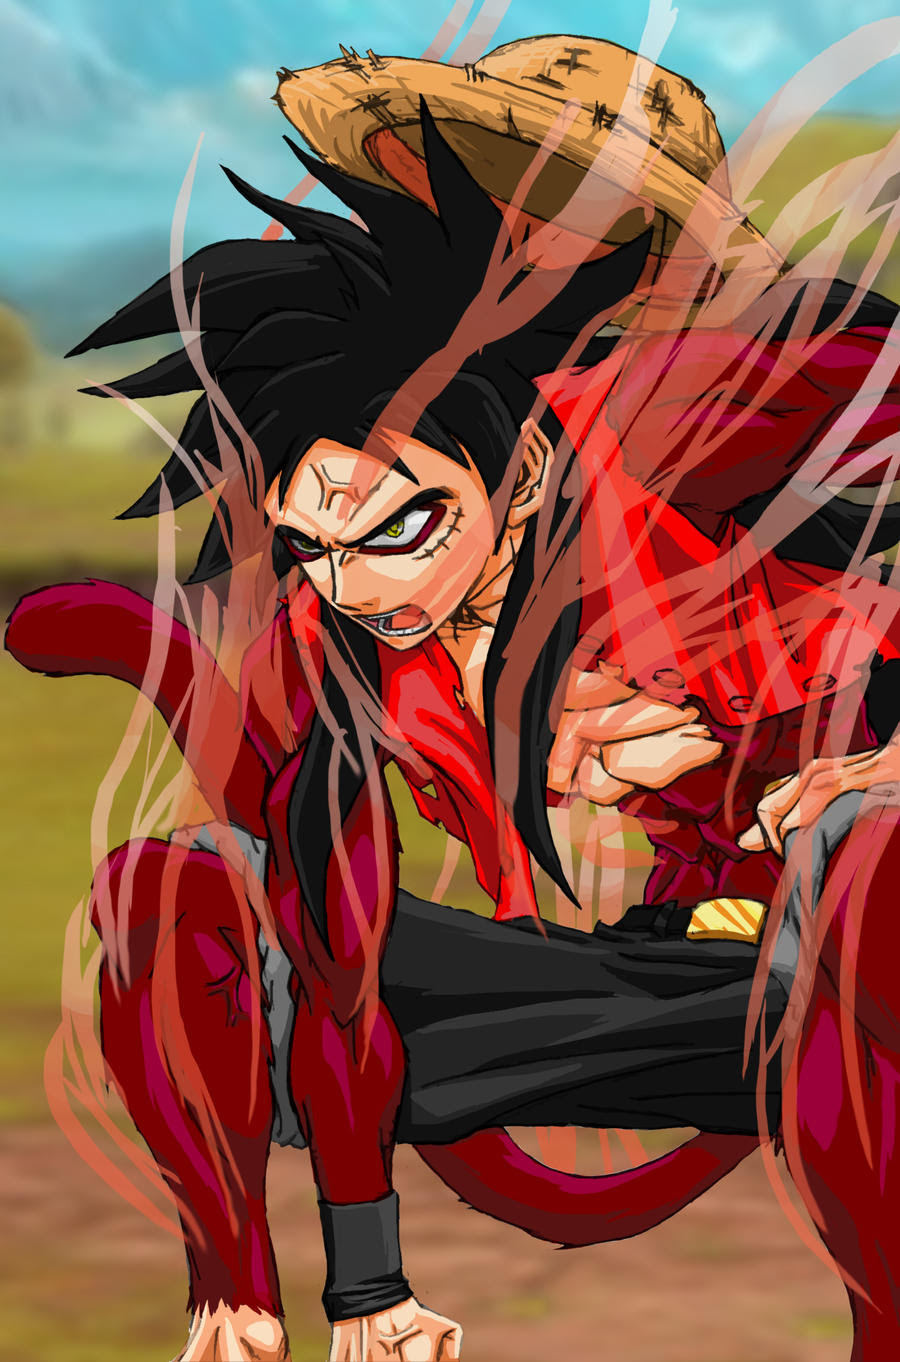 Hd wallpapers and background images Gear 5 Luffy Luffy Gear 5 Wallpapers Wallpaper Cave The One Piece Team Is The The Luffy 5 Passionate Group Japanesetoptatto